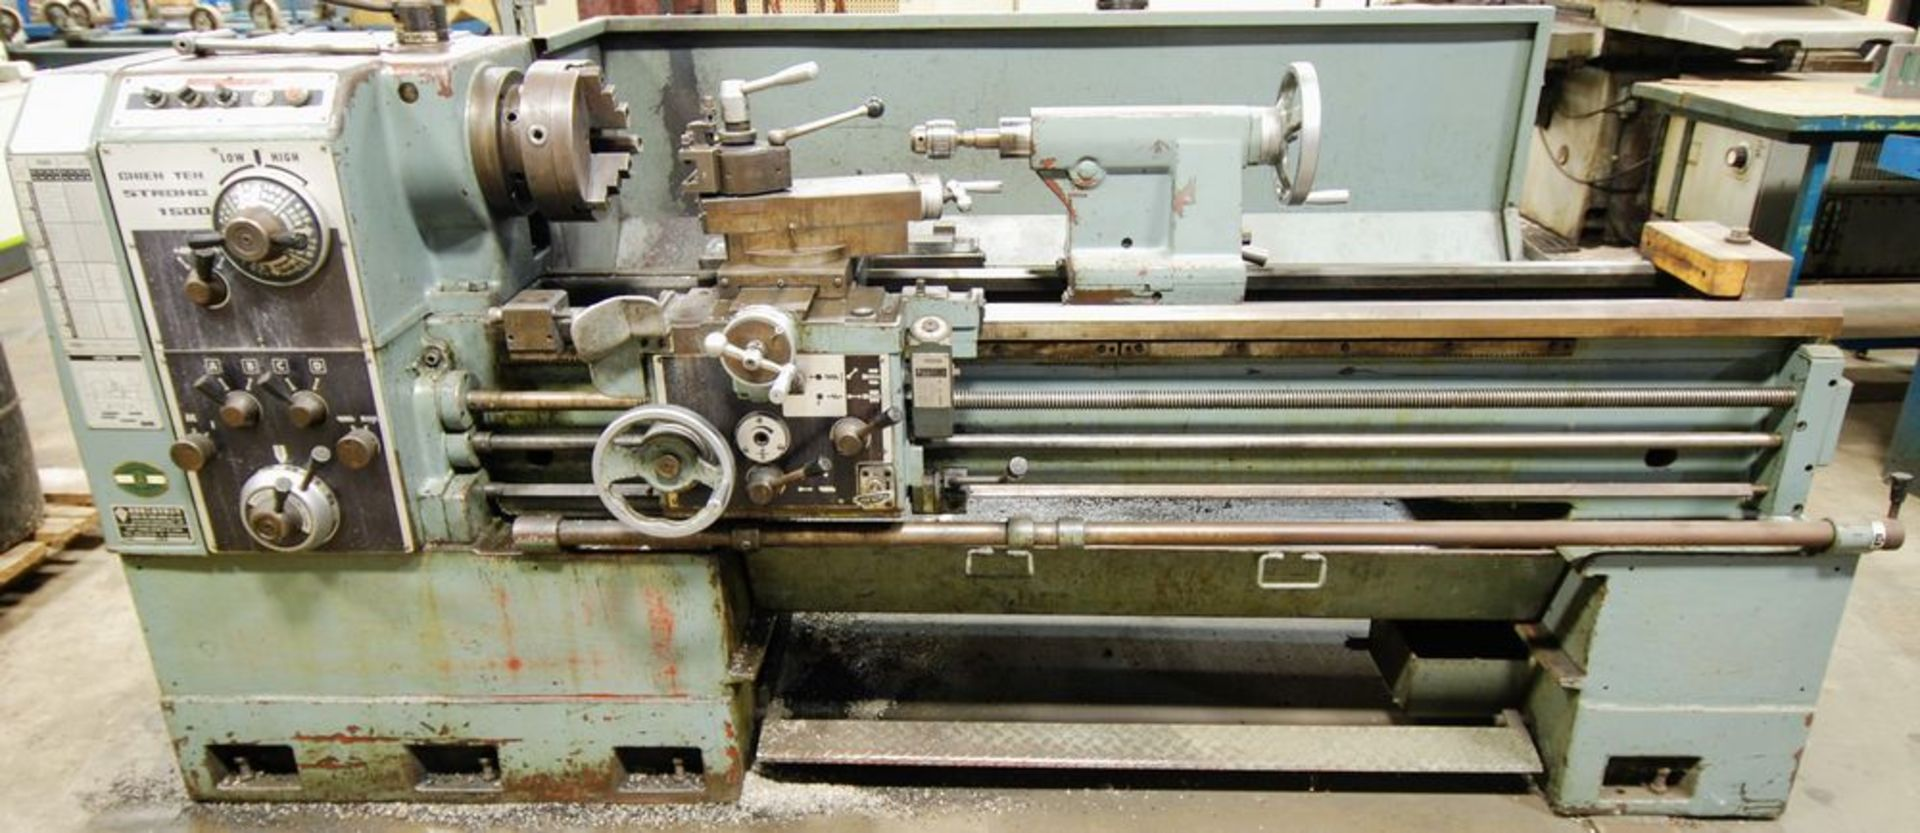 """Lot 95 - CHIEN YEH STRONG 1500 Engine Lathe, 3-Jaw Chuck, 20"""" Swing, 74"""" Bed, Tailstock, Tool Post, 1,800"""